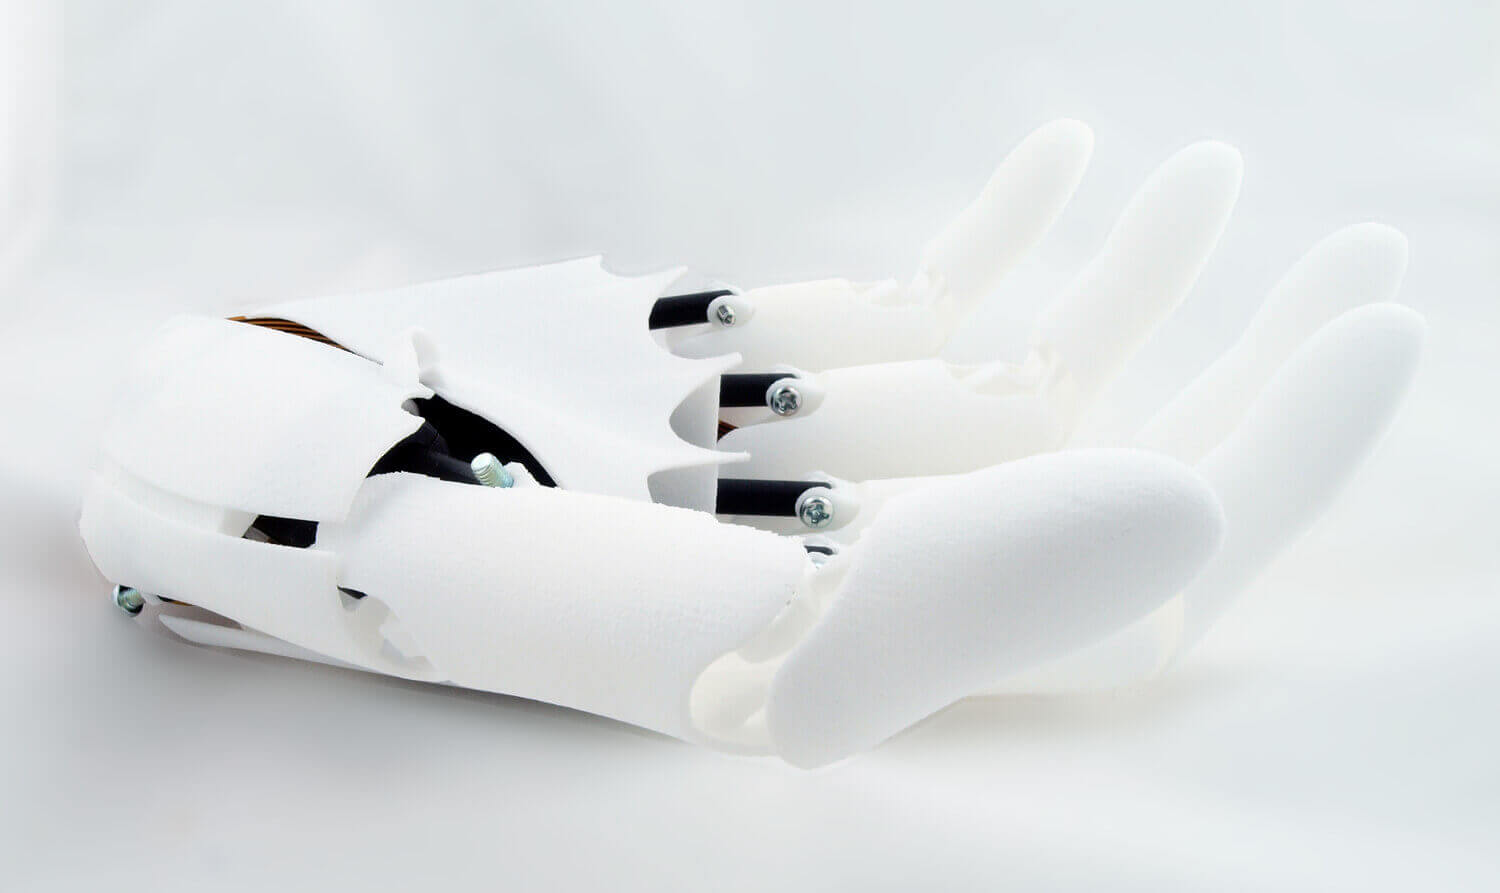 3D Printed Prosthetics made with Laser Sintering | All3DP